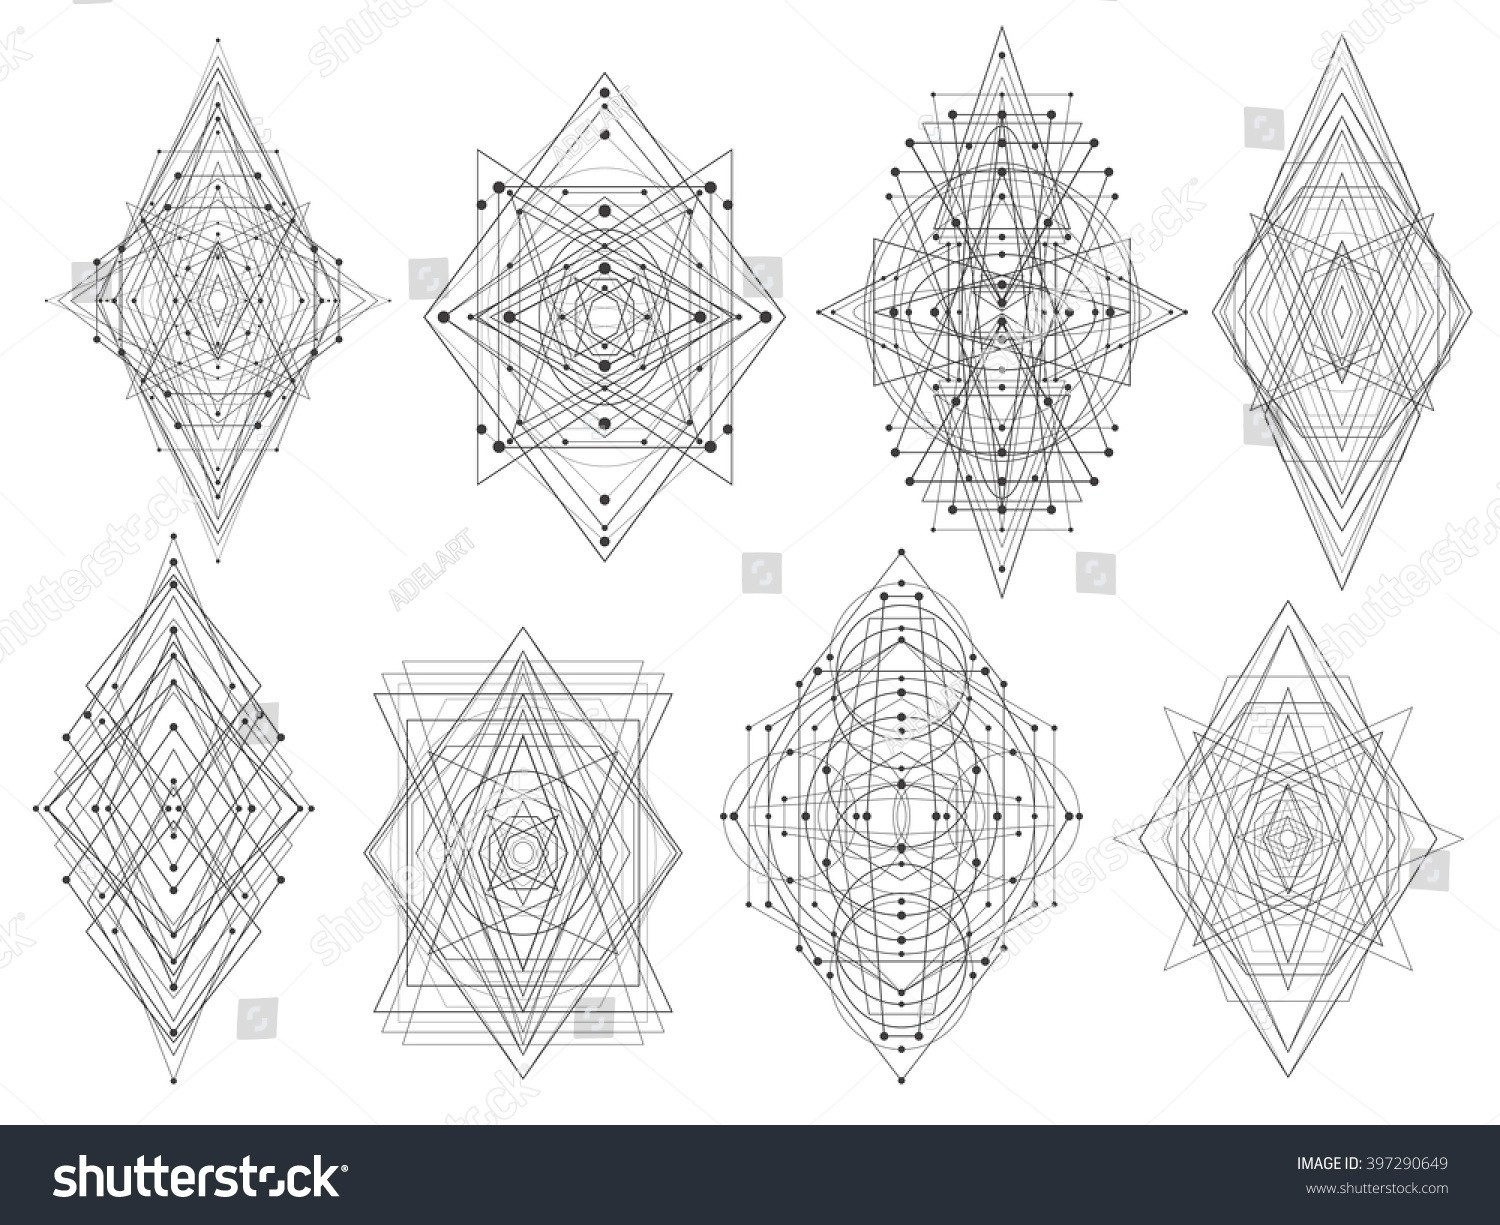 Geometric Shapes Design Tattoo | World Of Example with Geometric Shapes Design Tattoo 24513